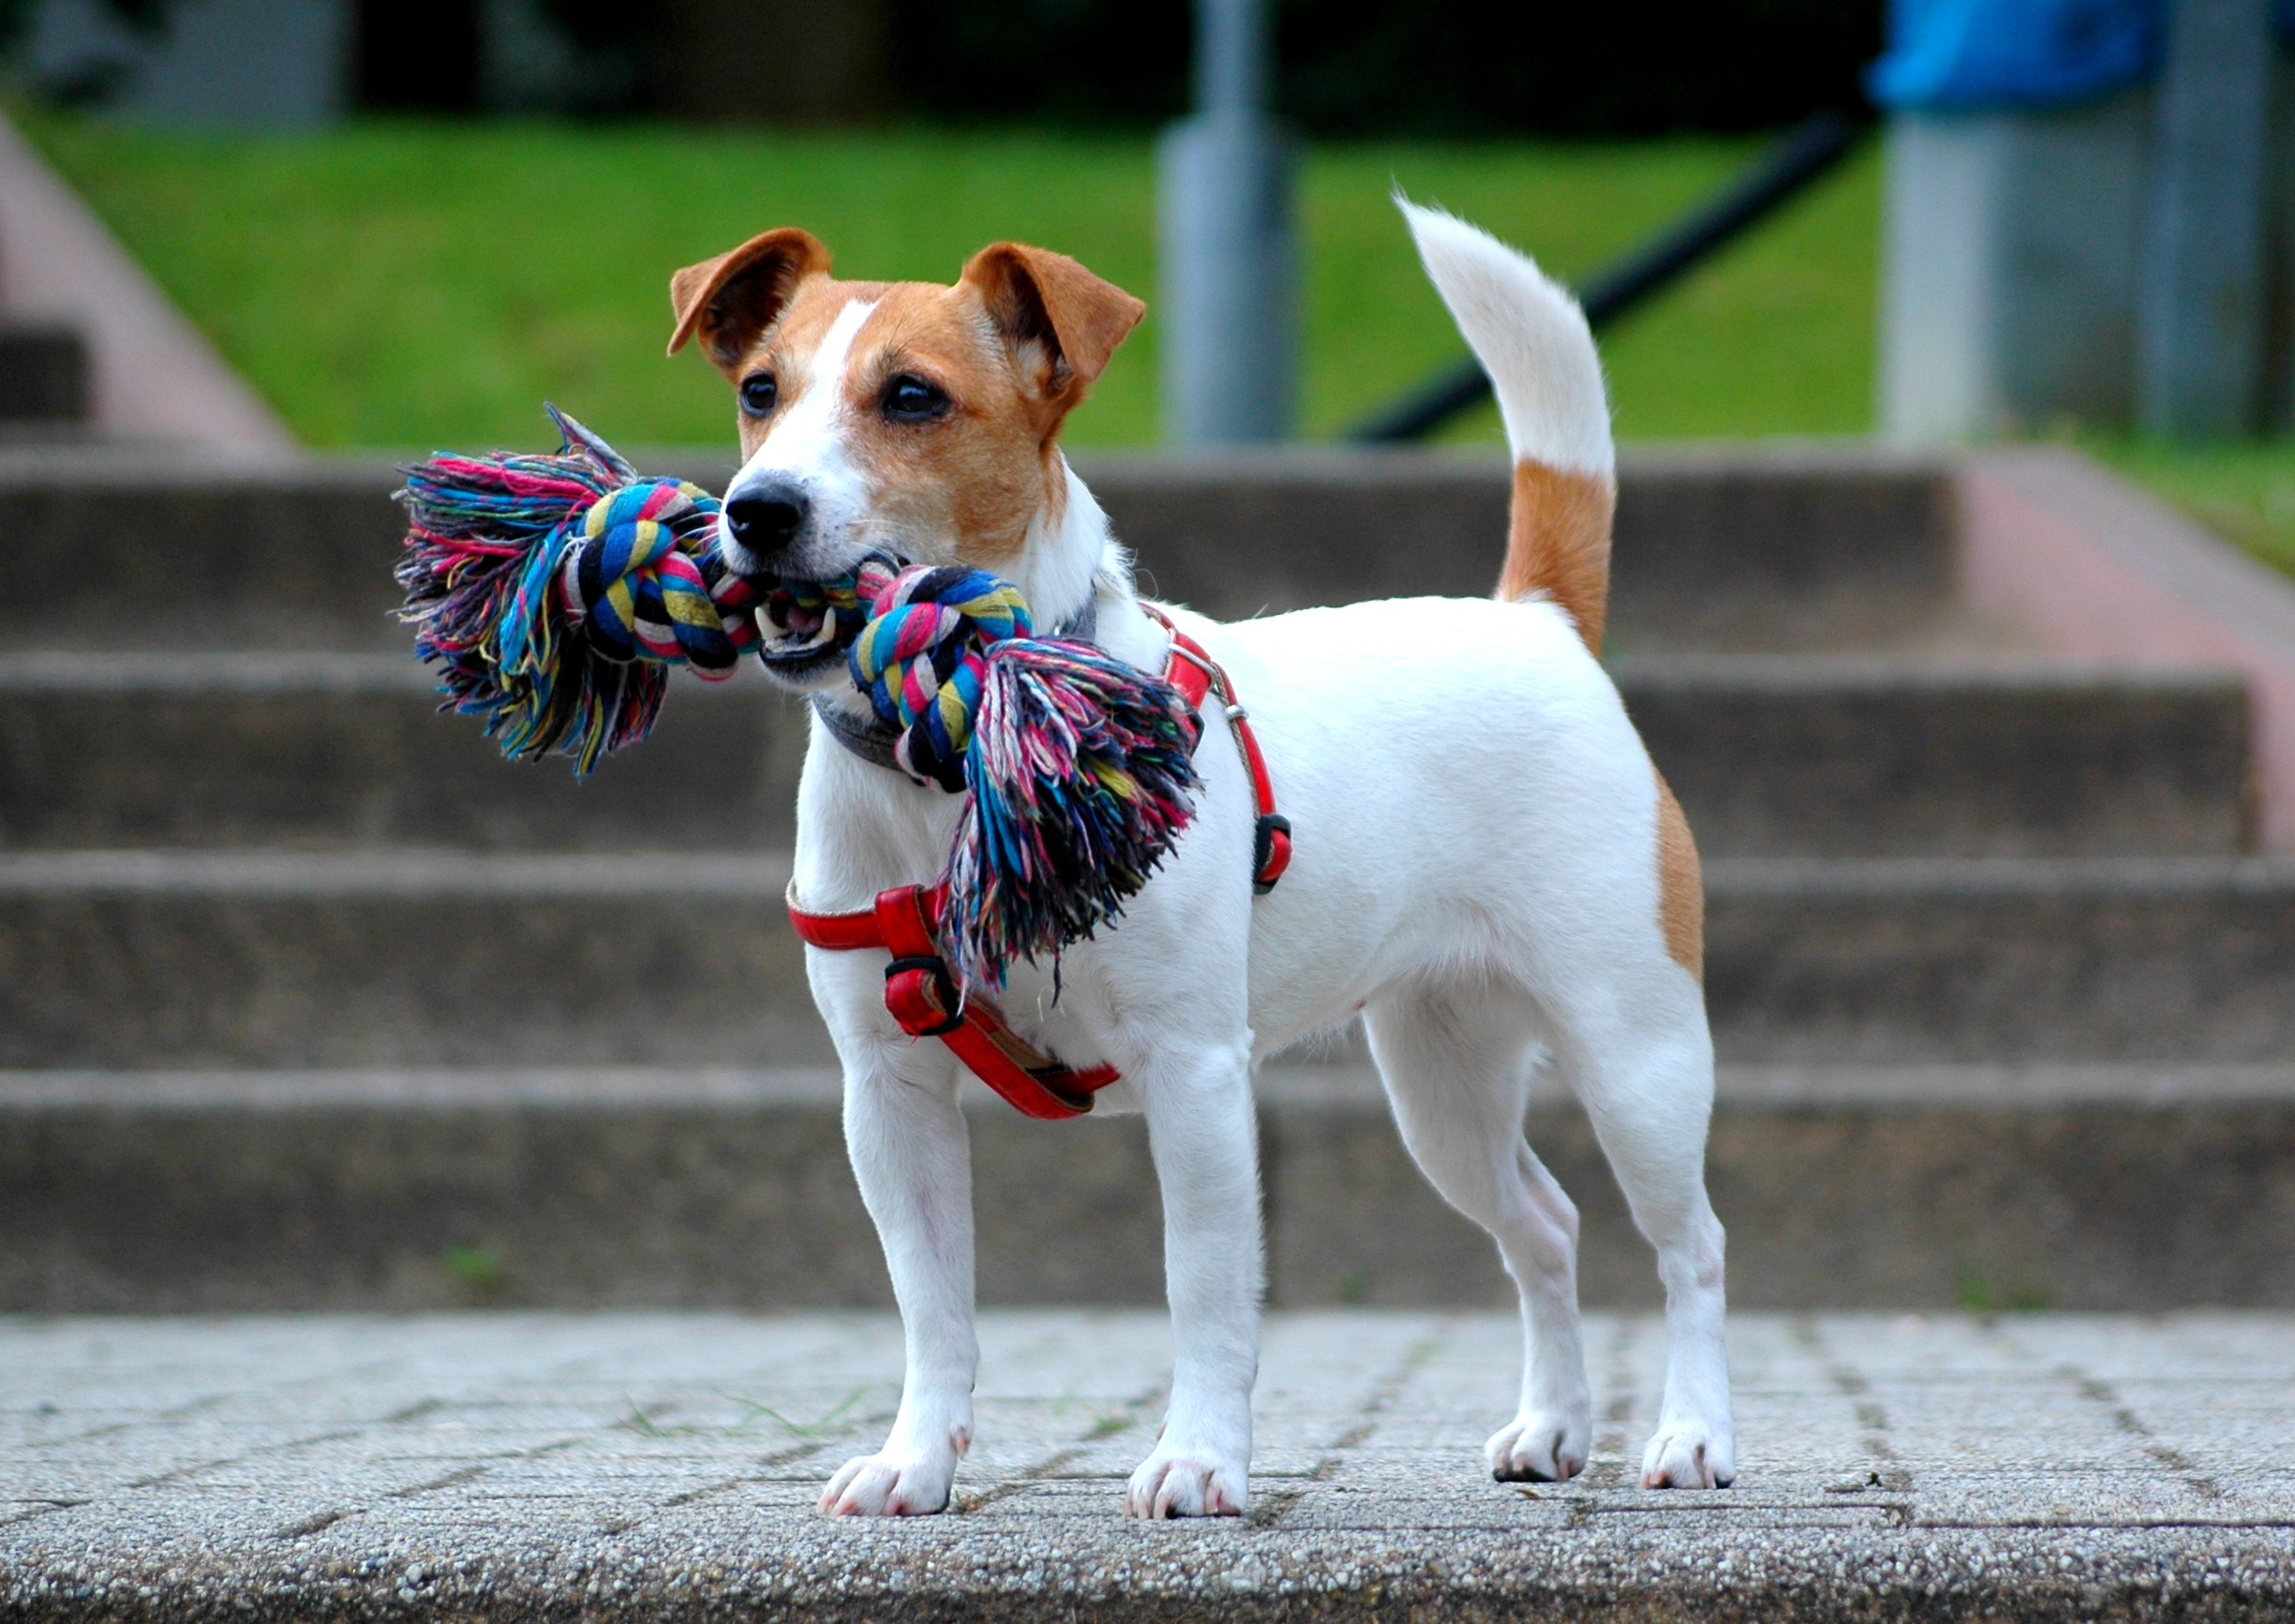 Jack Russell Terrier Backgrounds, Compatible - PC, Mobile, Gadgets| 2449x1733 px